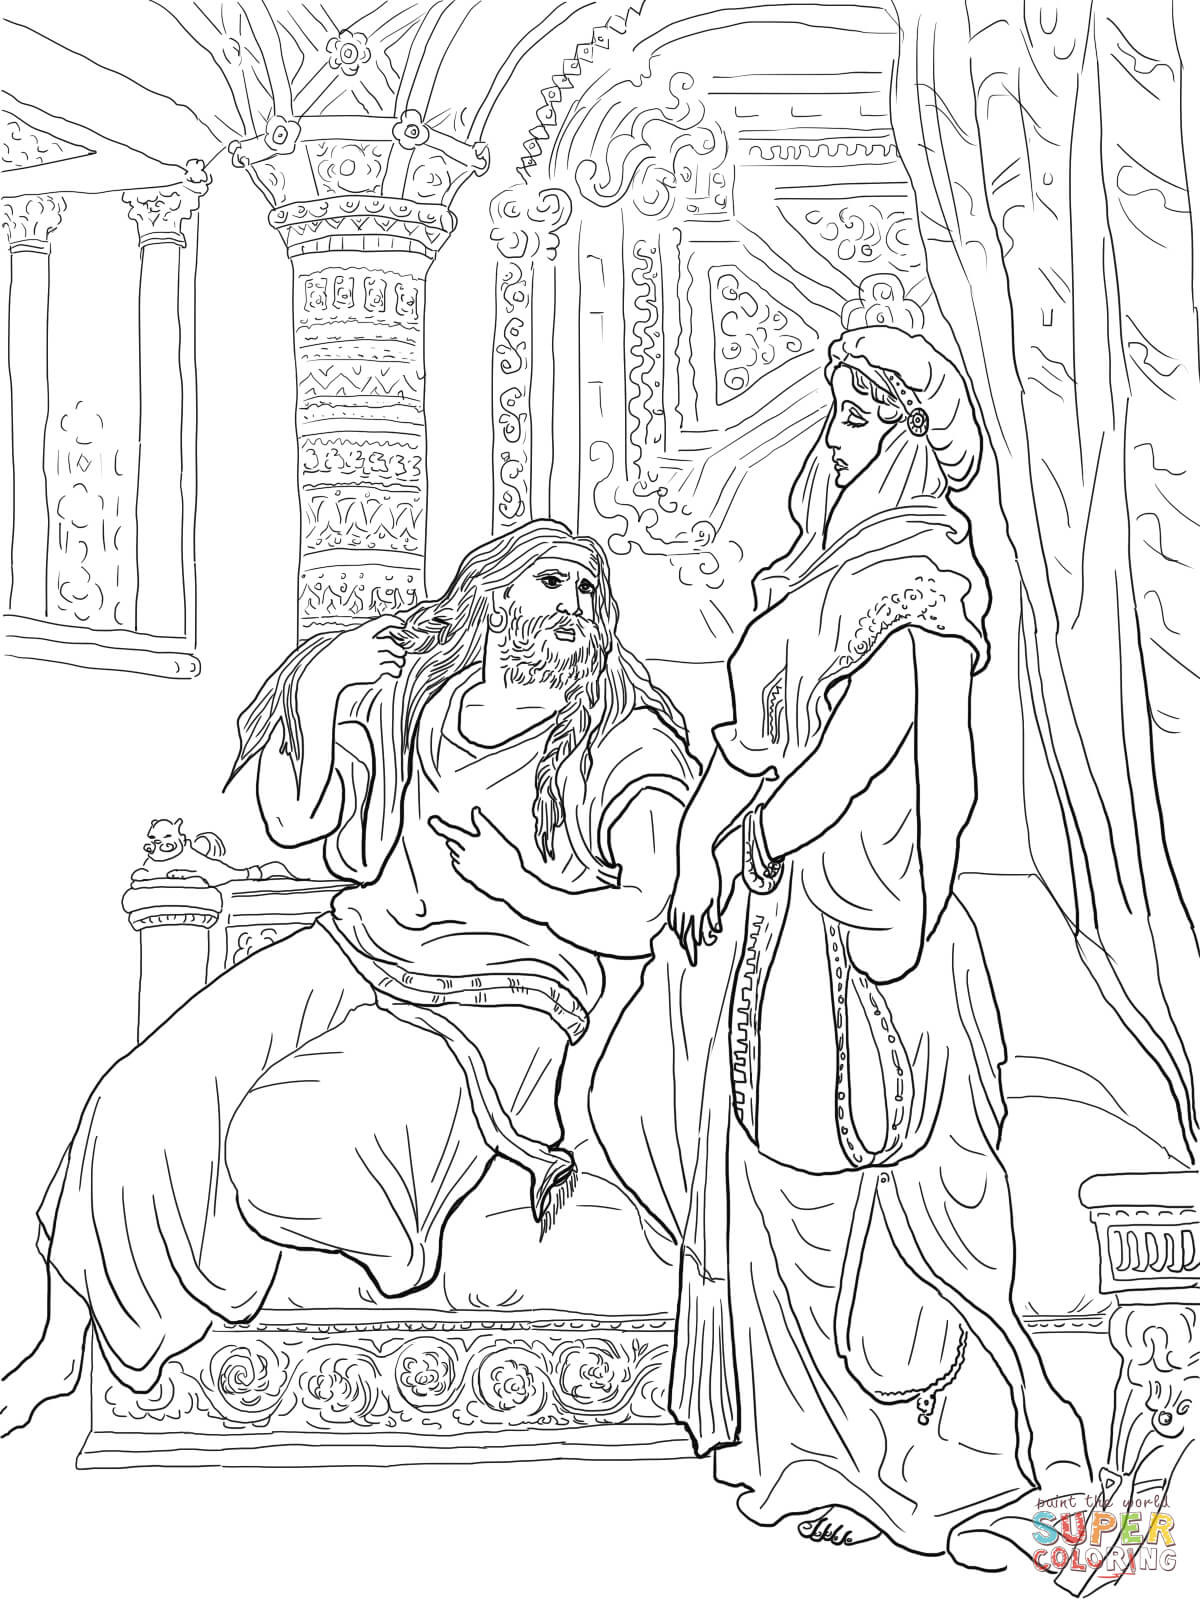 Samson Coloring Pages For Preschoolers at GetDrawings